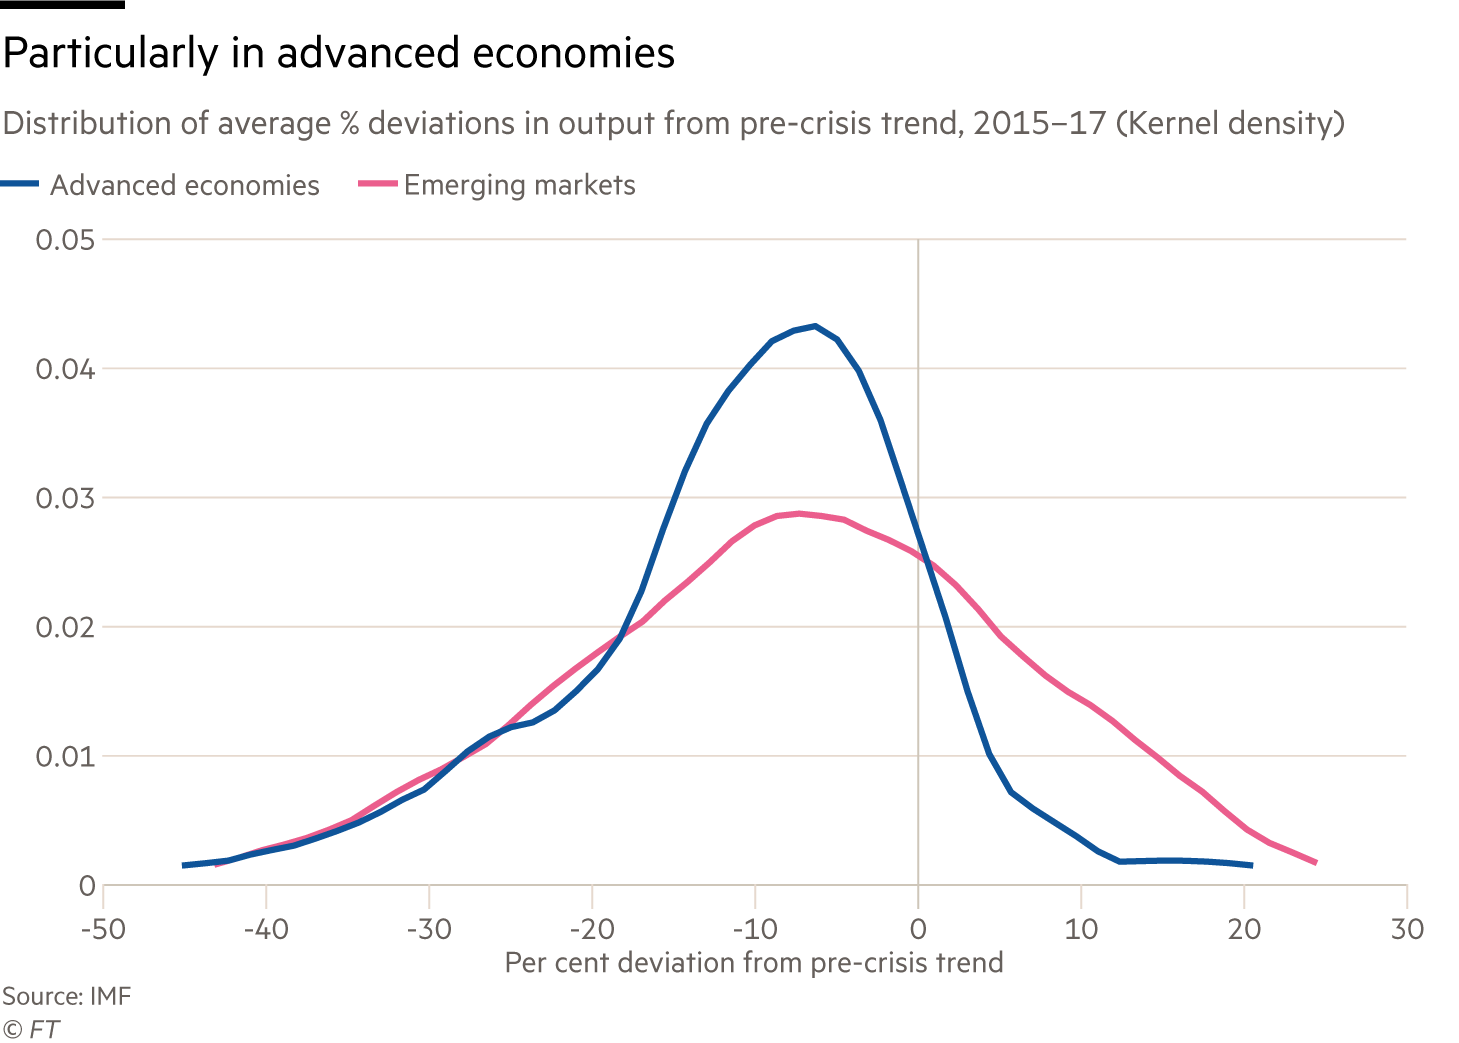 Chart showing distribution of average % deviations in output from pre-crisis trend